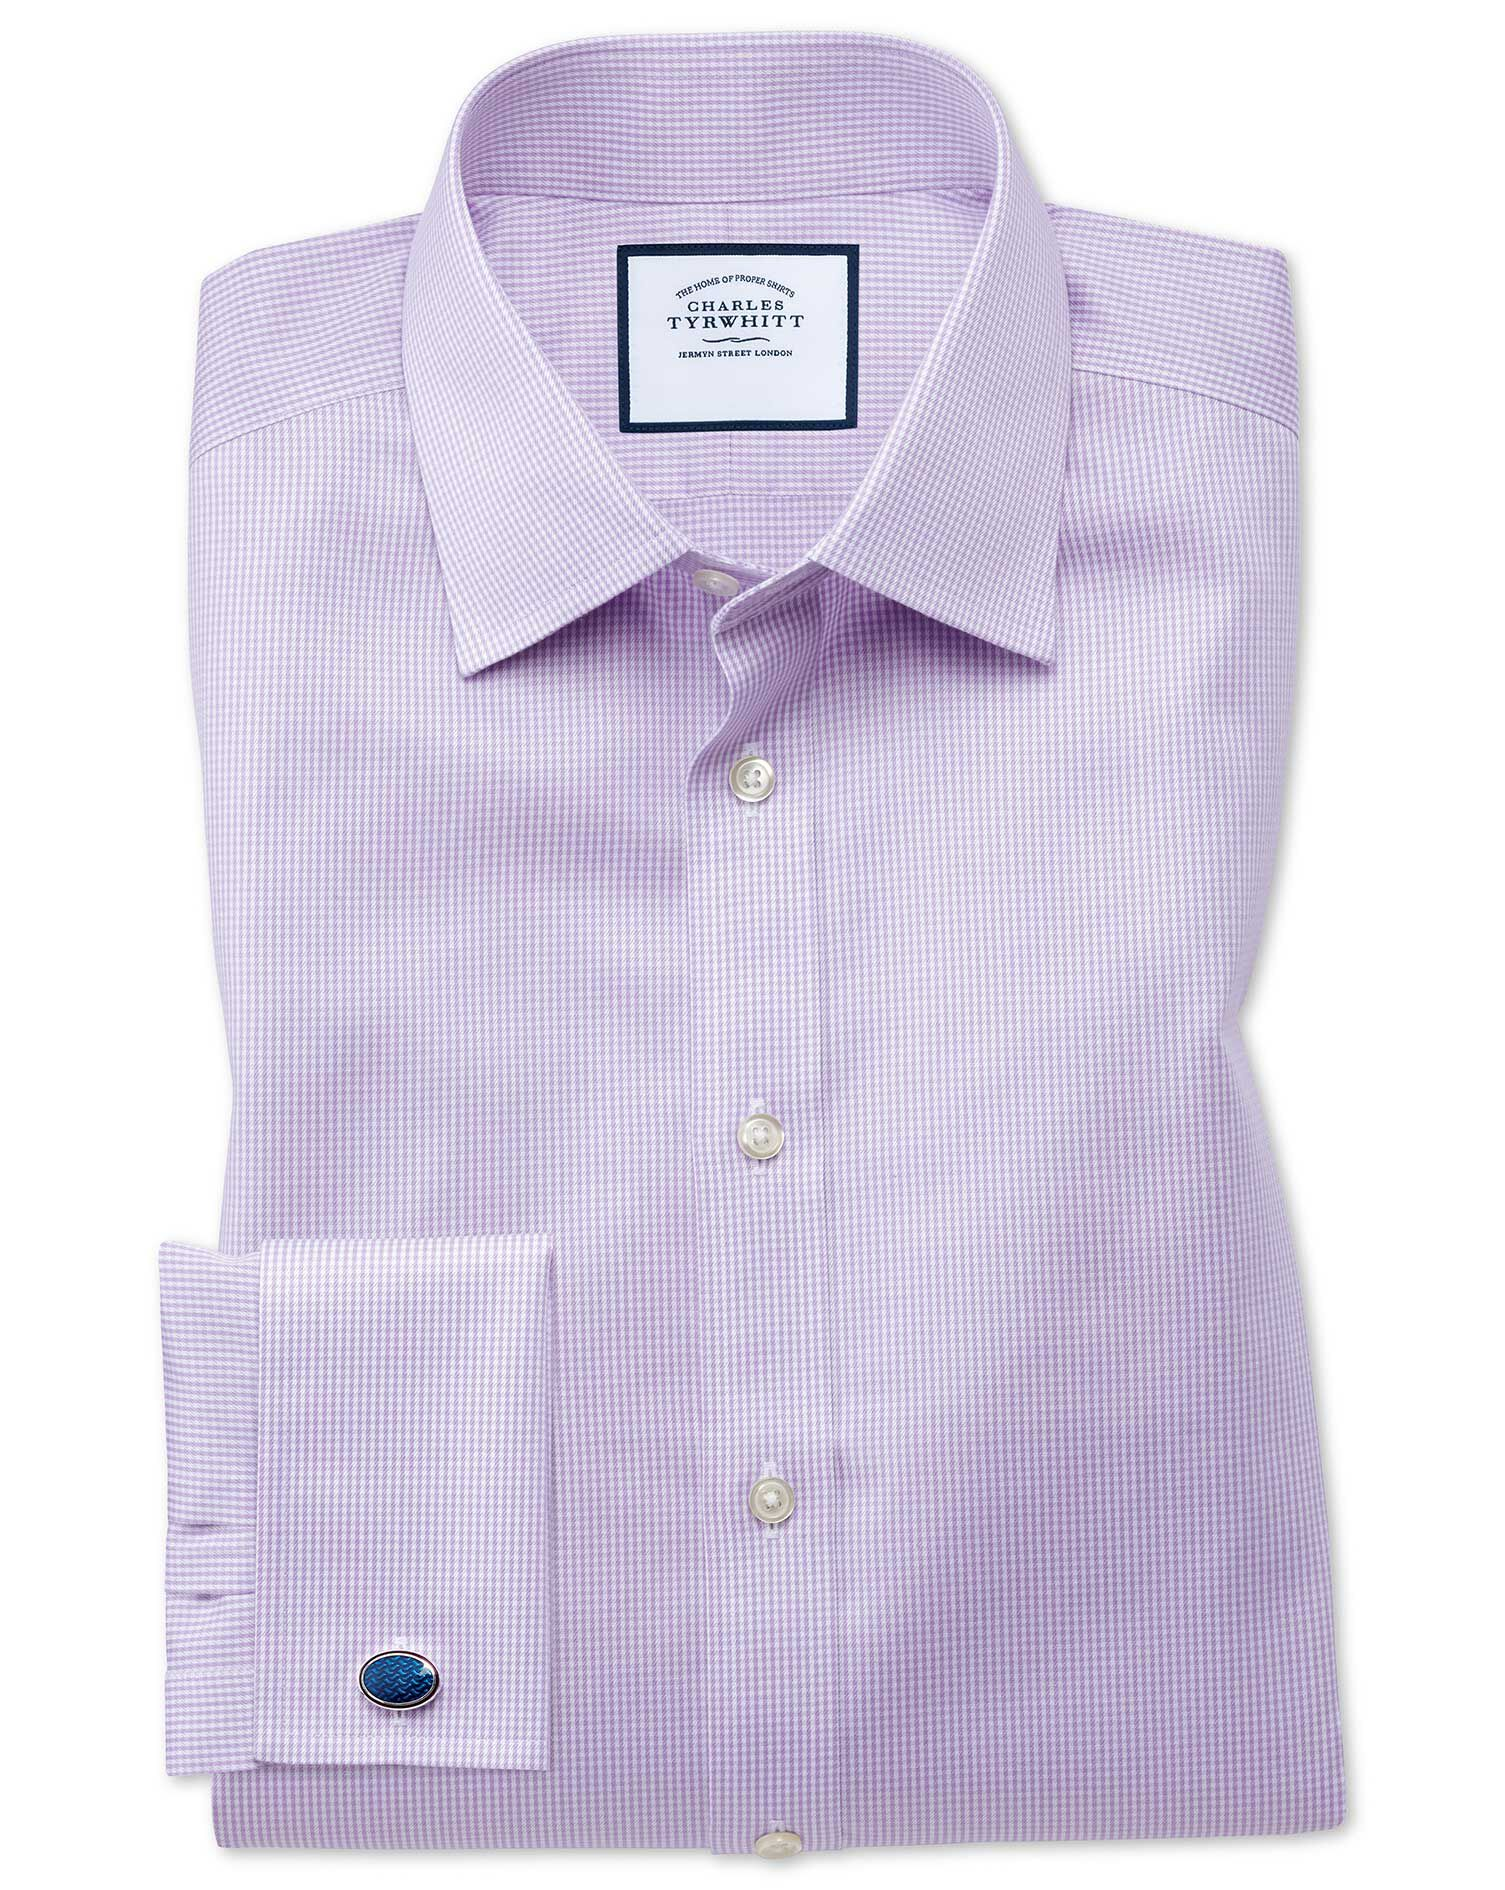 Slim Fit Non-Iron Puppytooth Lilac Cotton Formal Shirt Single Cuff Size 16.5/36 by Charles Tyrwhitt